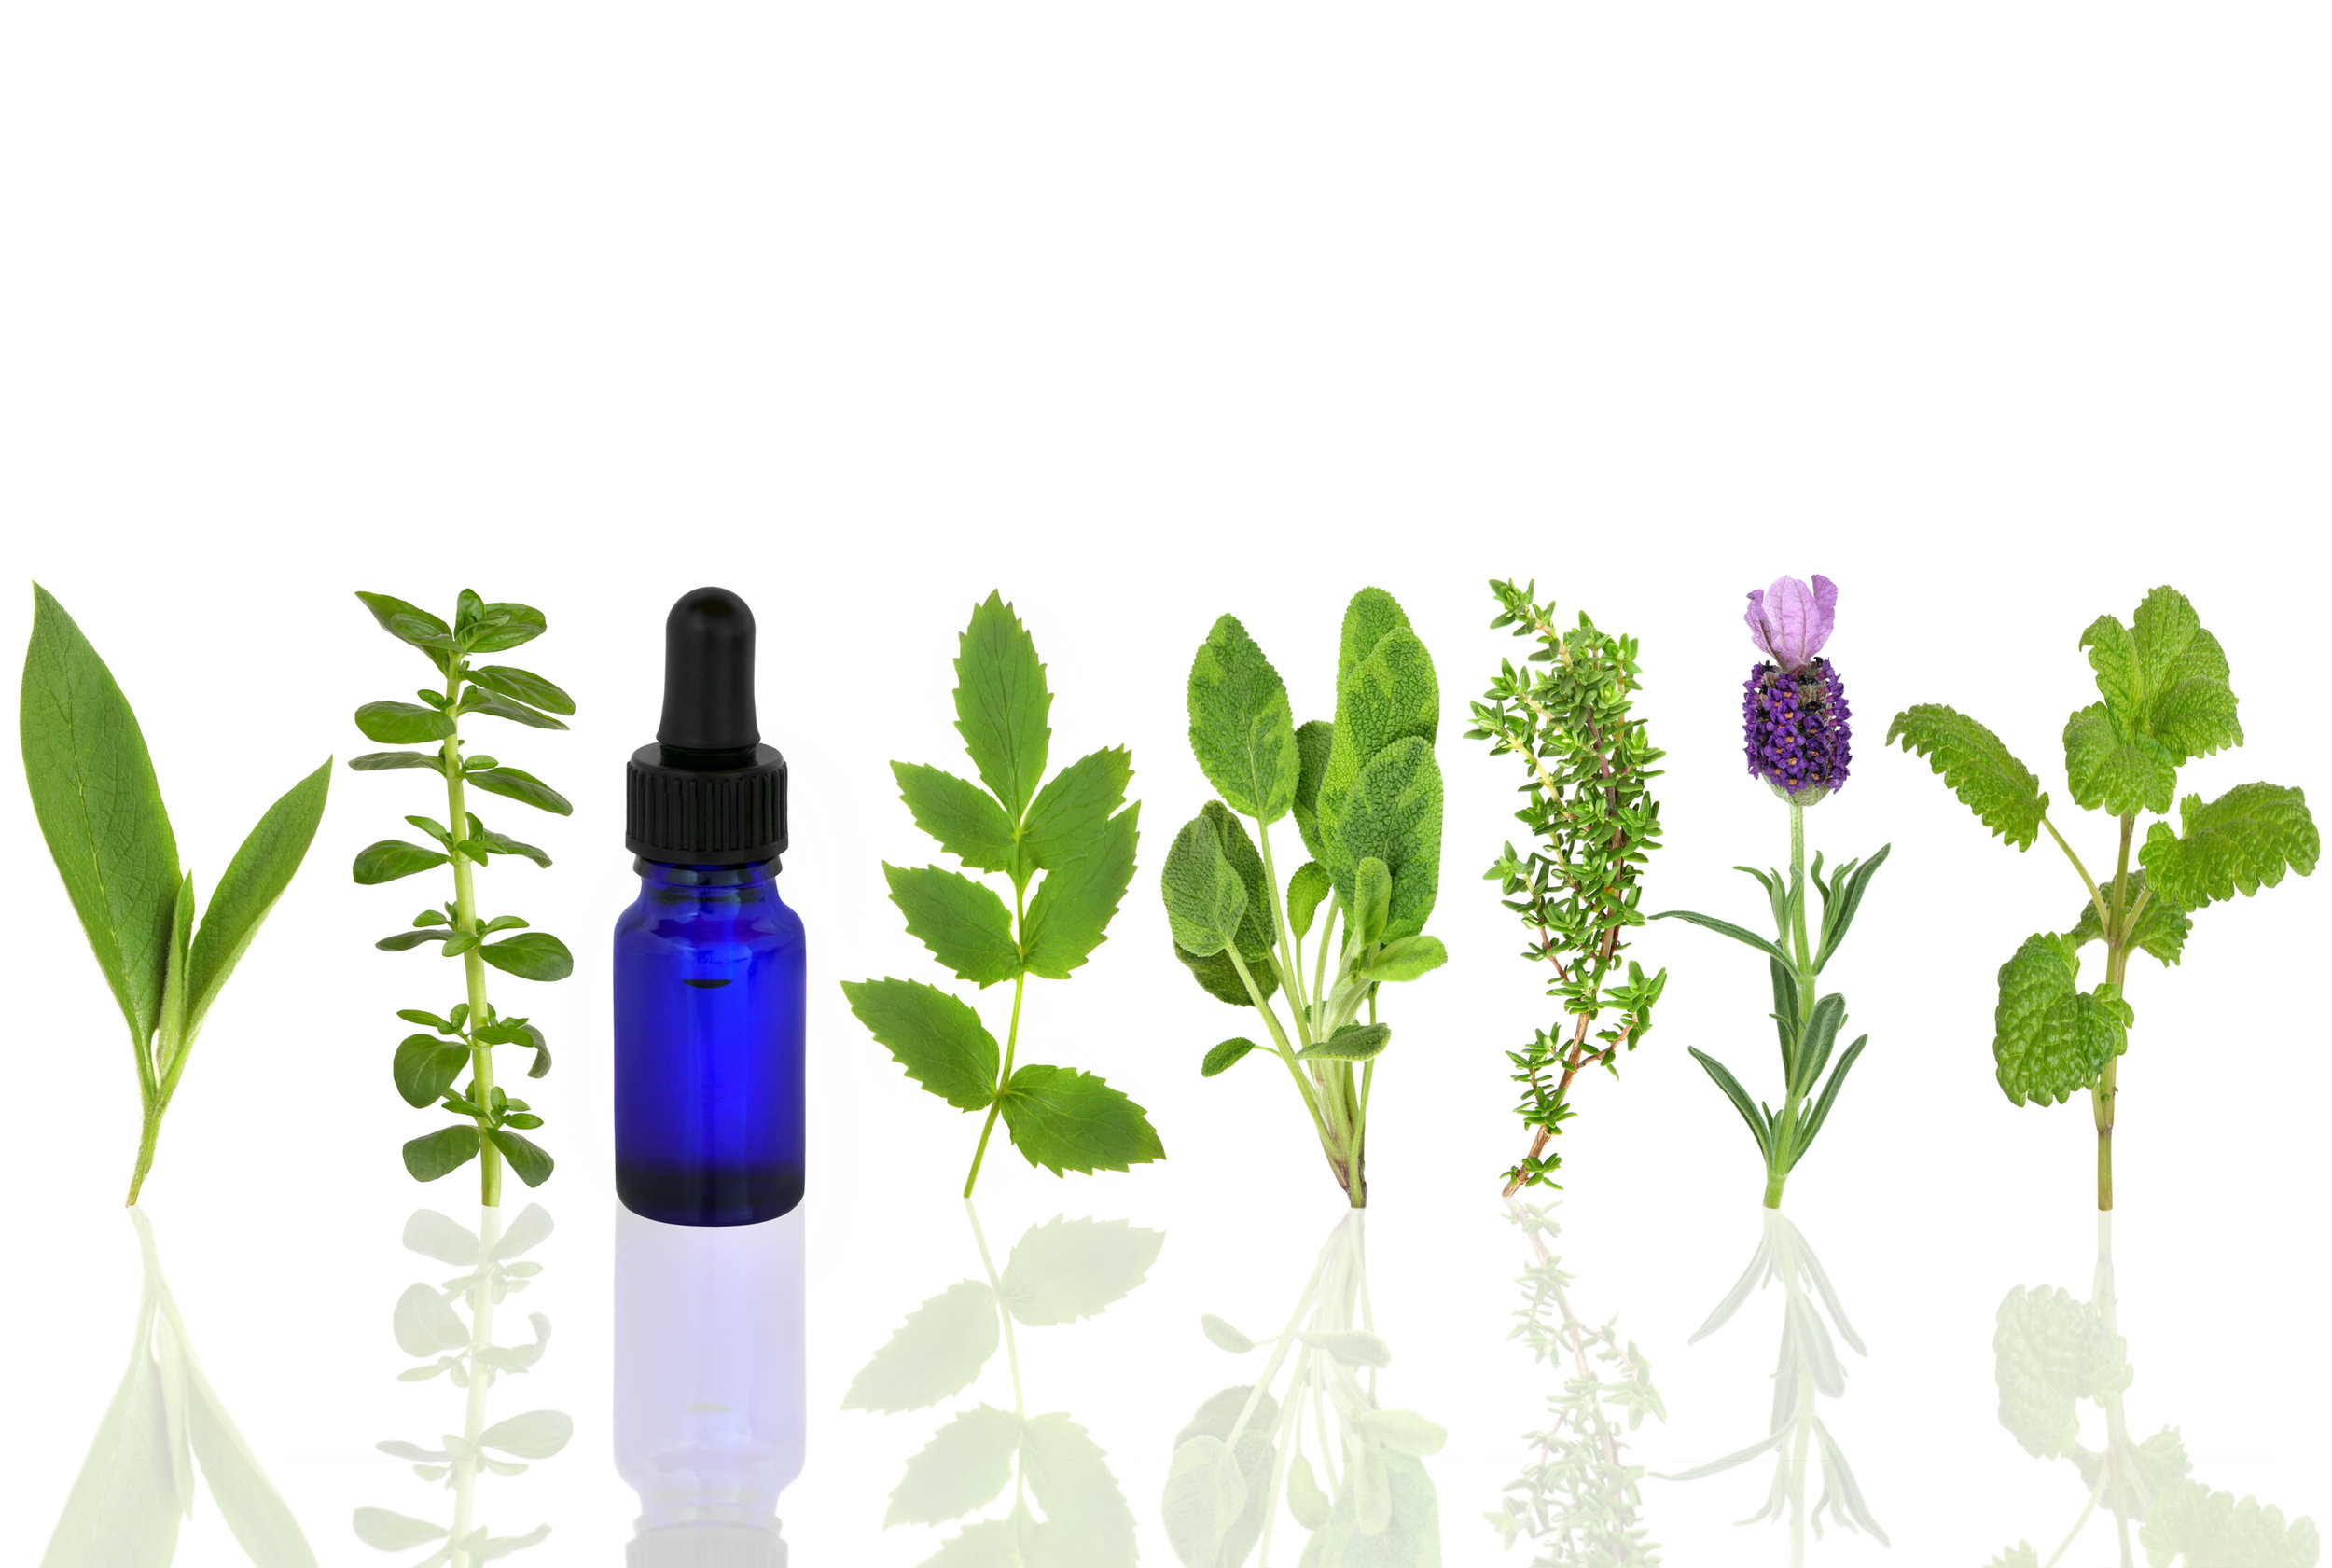 Liz will make custom essential oil blends for you